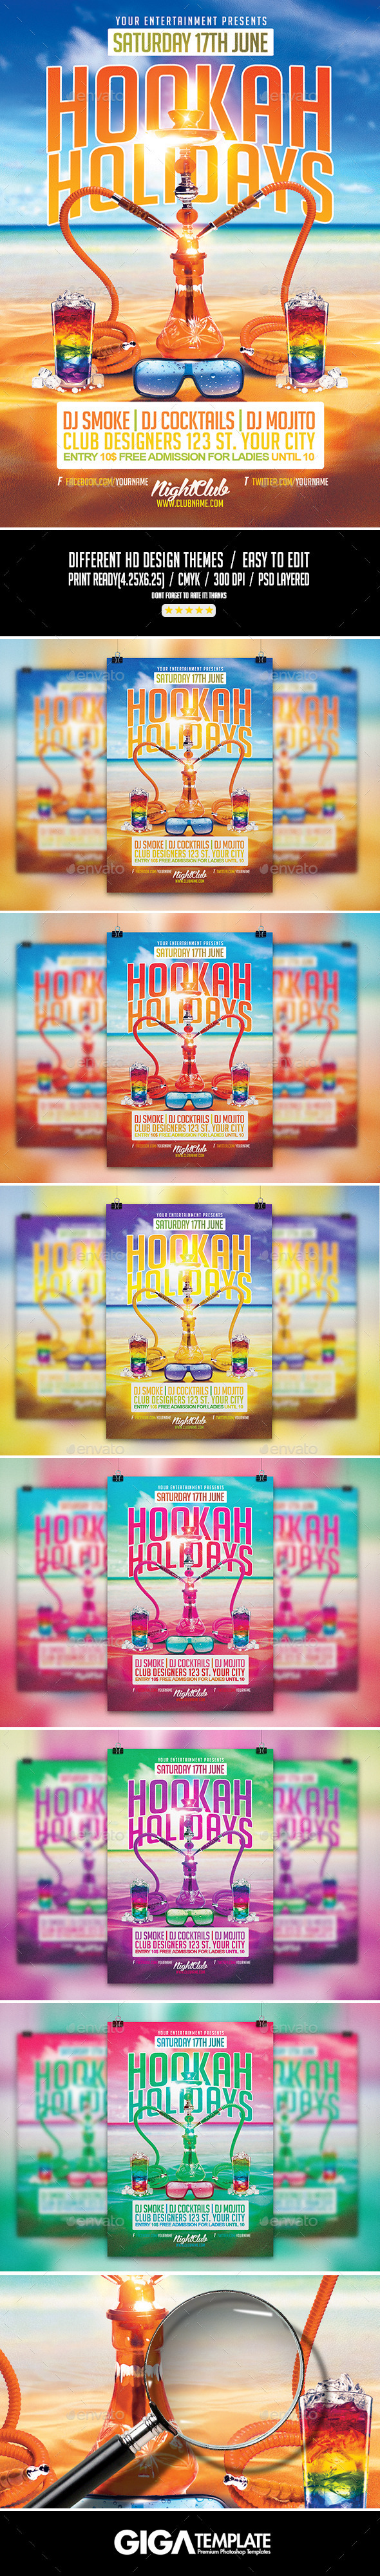 hookah holidays summer party psd flyer template on behance this is a flyer for all kind of party you can modify everything very easy and quick changing the color style picture typo is no problem